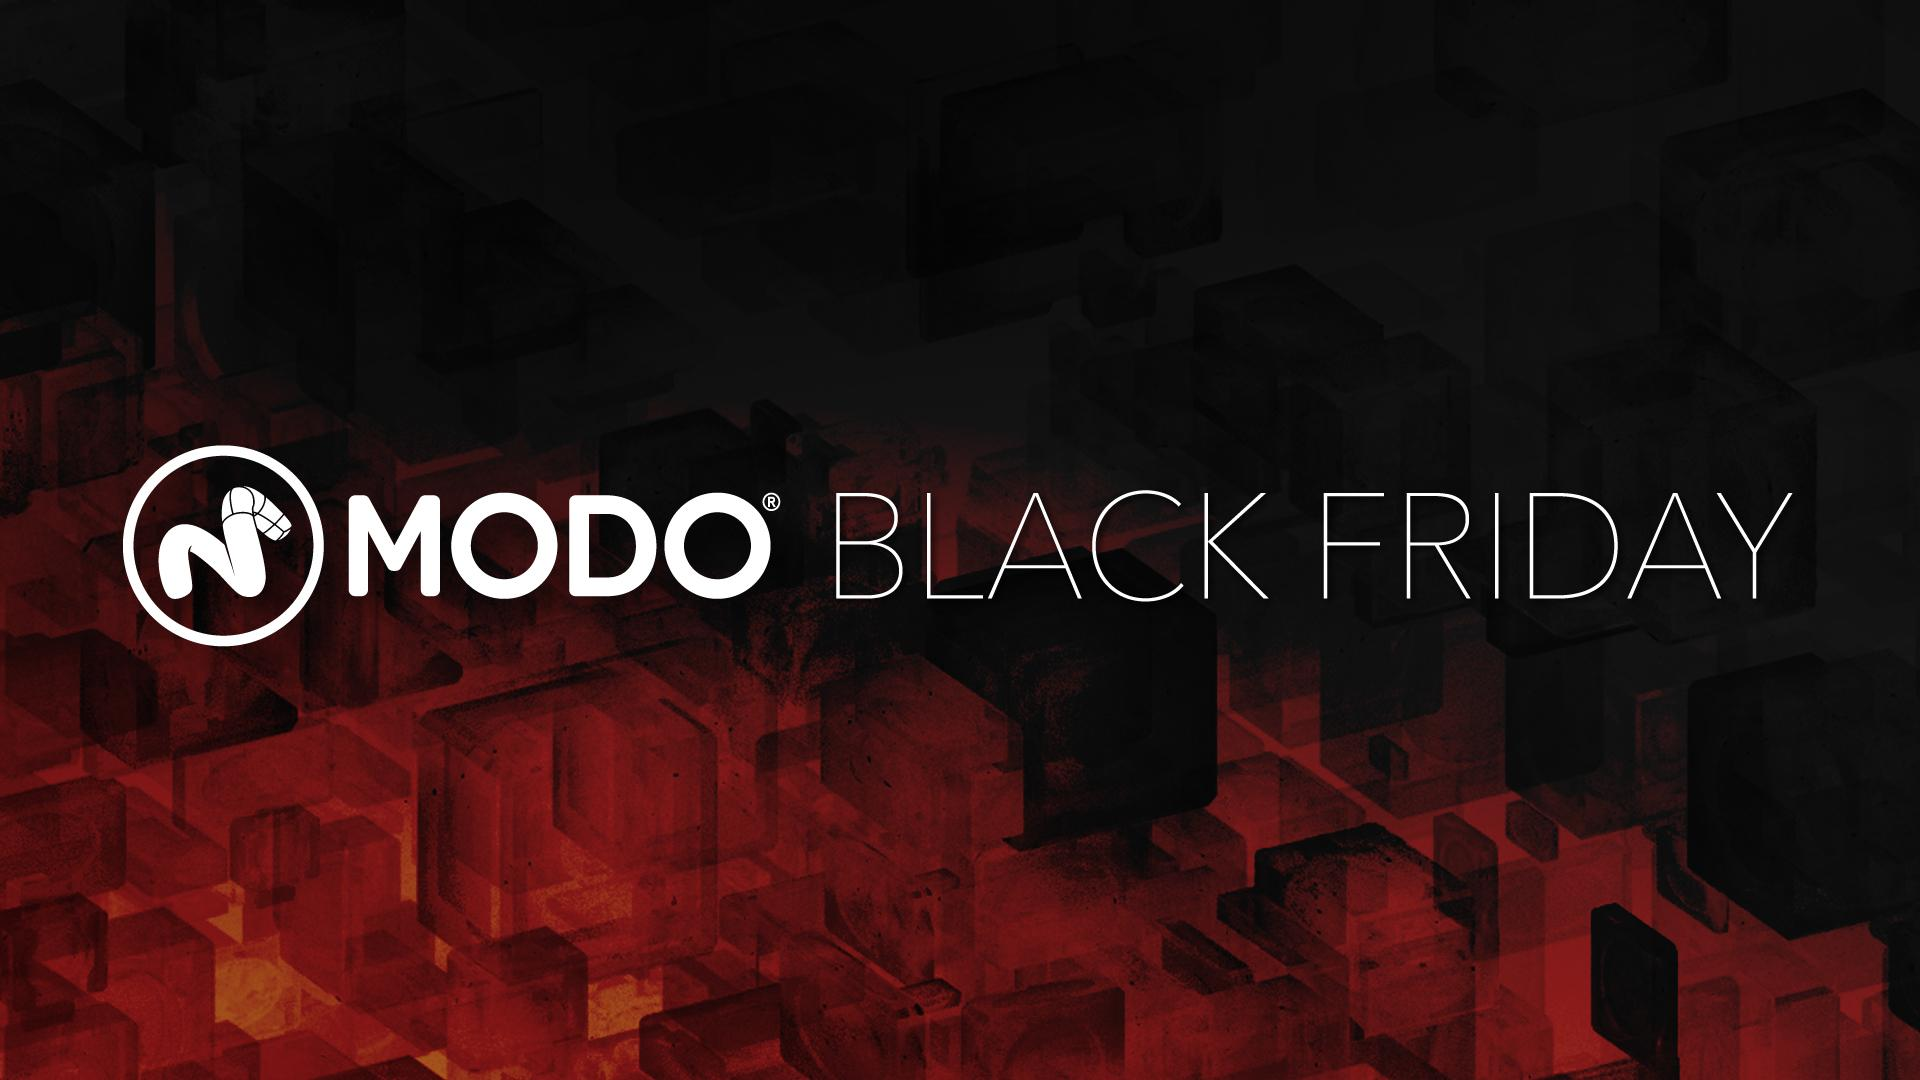 Modo Black Friday campaign